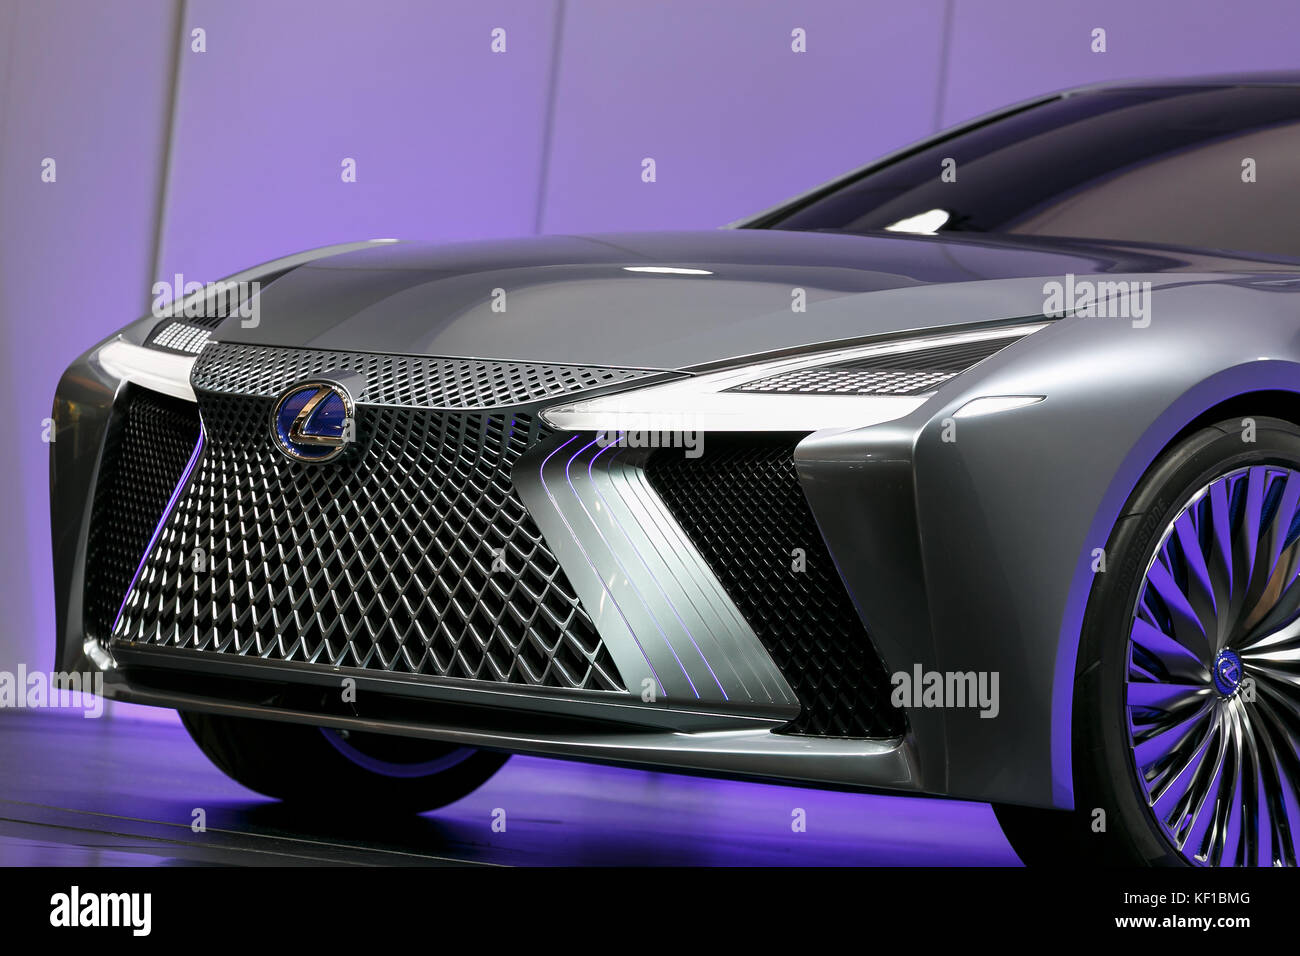 https://c8.alamy.com/comp/KF1BMG/tokyo-japan-25th-oct-2017-lexus-ls-plus-concept-vehicle-on-display-KF1BMG.jpg